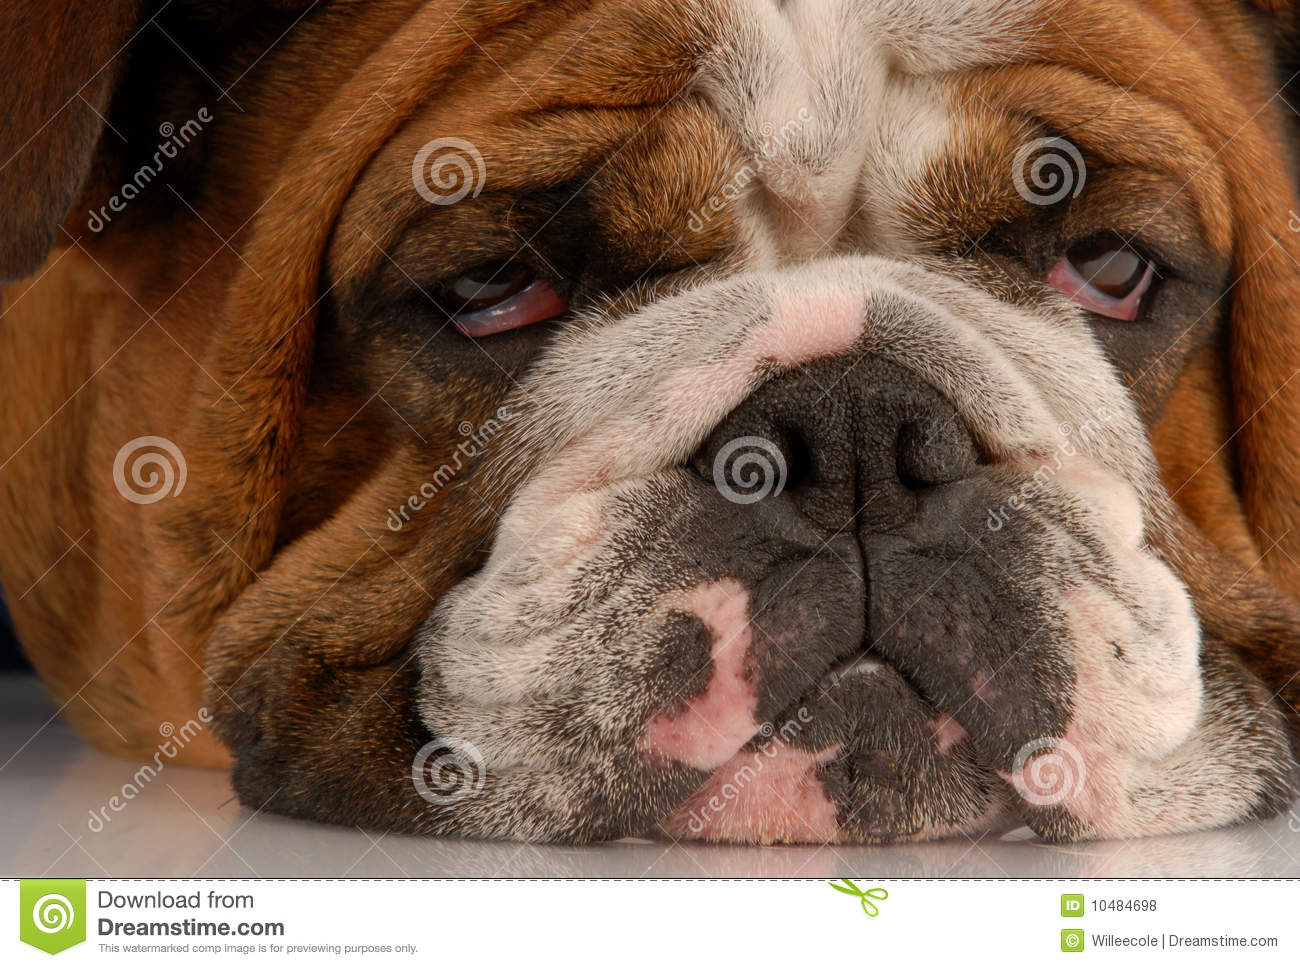 Ugly looking dogs - photo#8